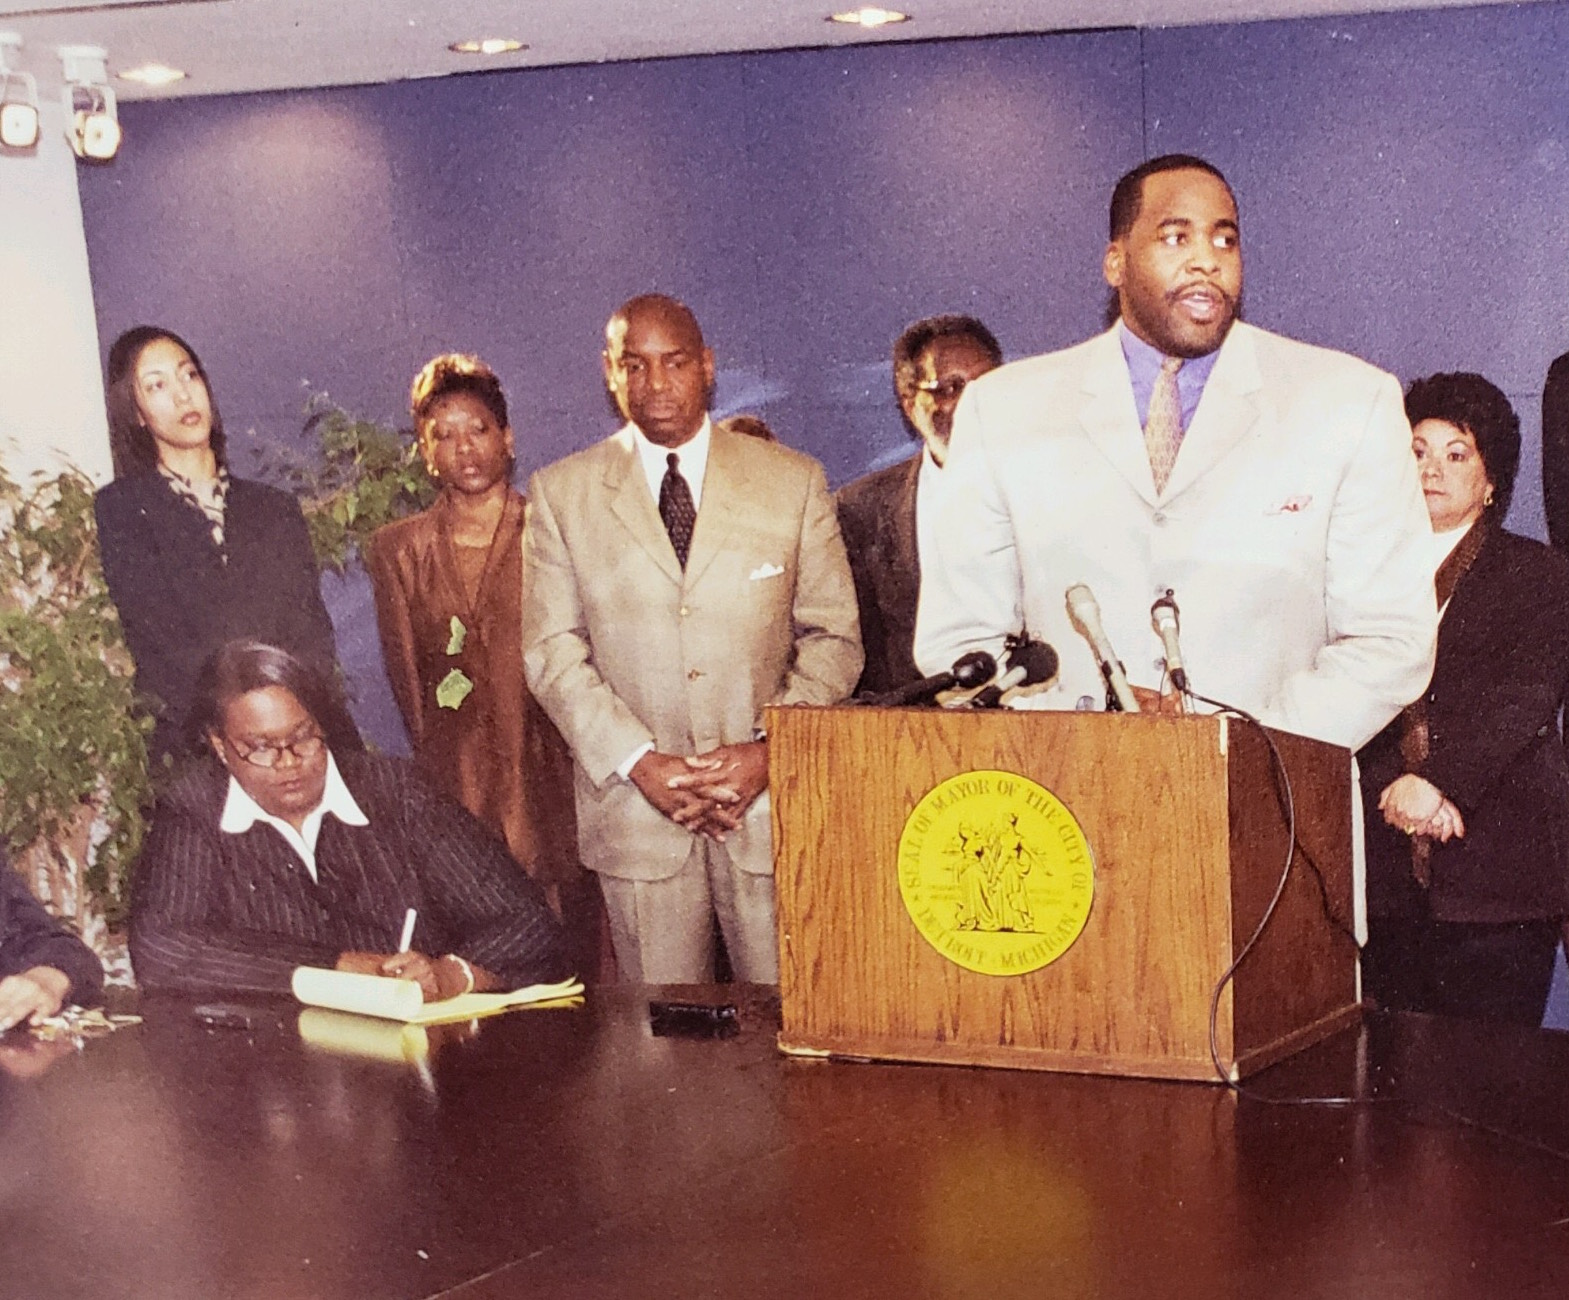 Mayor Kwame Kilpatrick at a press conference with Detroit Police Chief Jerry Oliver, center, and chief of staff Christine Beatty, left. When he became mayor in 2002, Kilpatrick broke with tradition to hire a police chief from out of town. Kilpatrick sought to reform the department, but his tenure as mayor was more often marked by controversy surrounding the police officers on his security staff.  Courtesy of Jerry Oliver.